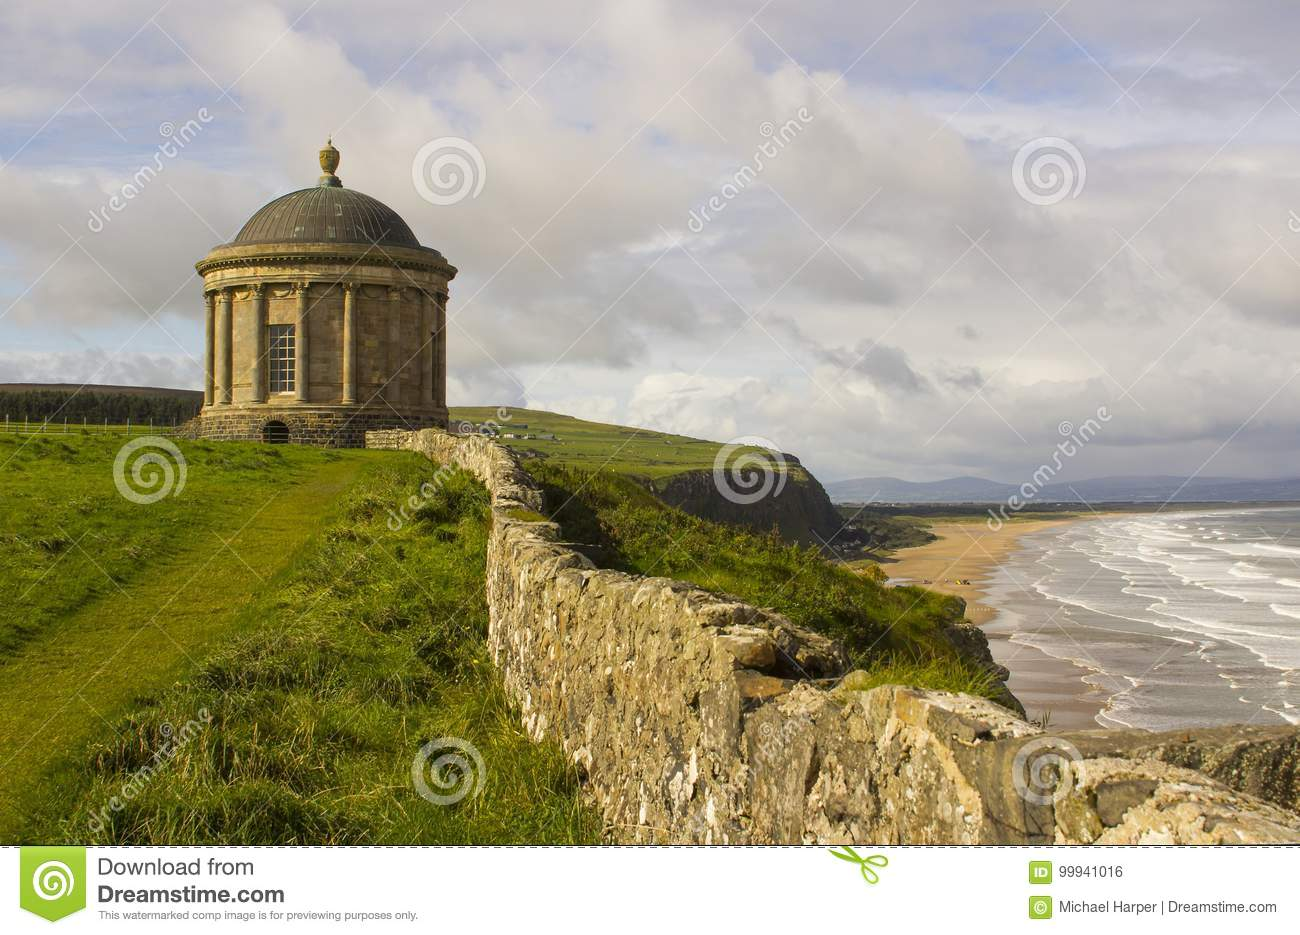 Mussenden Temple located on the Downhill Demesne in County Londonderry on the North Coast of Ireland.